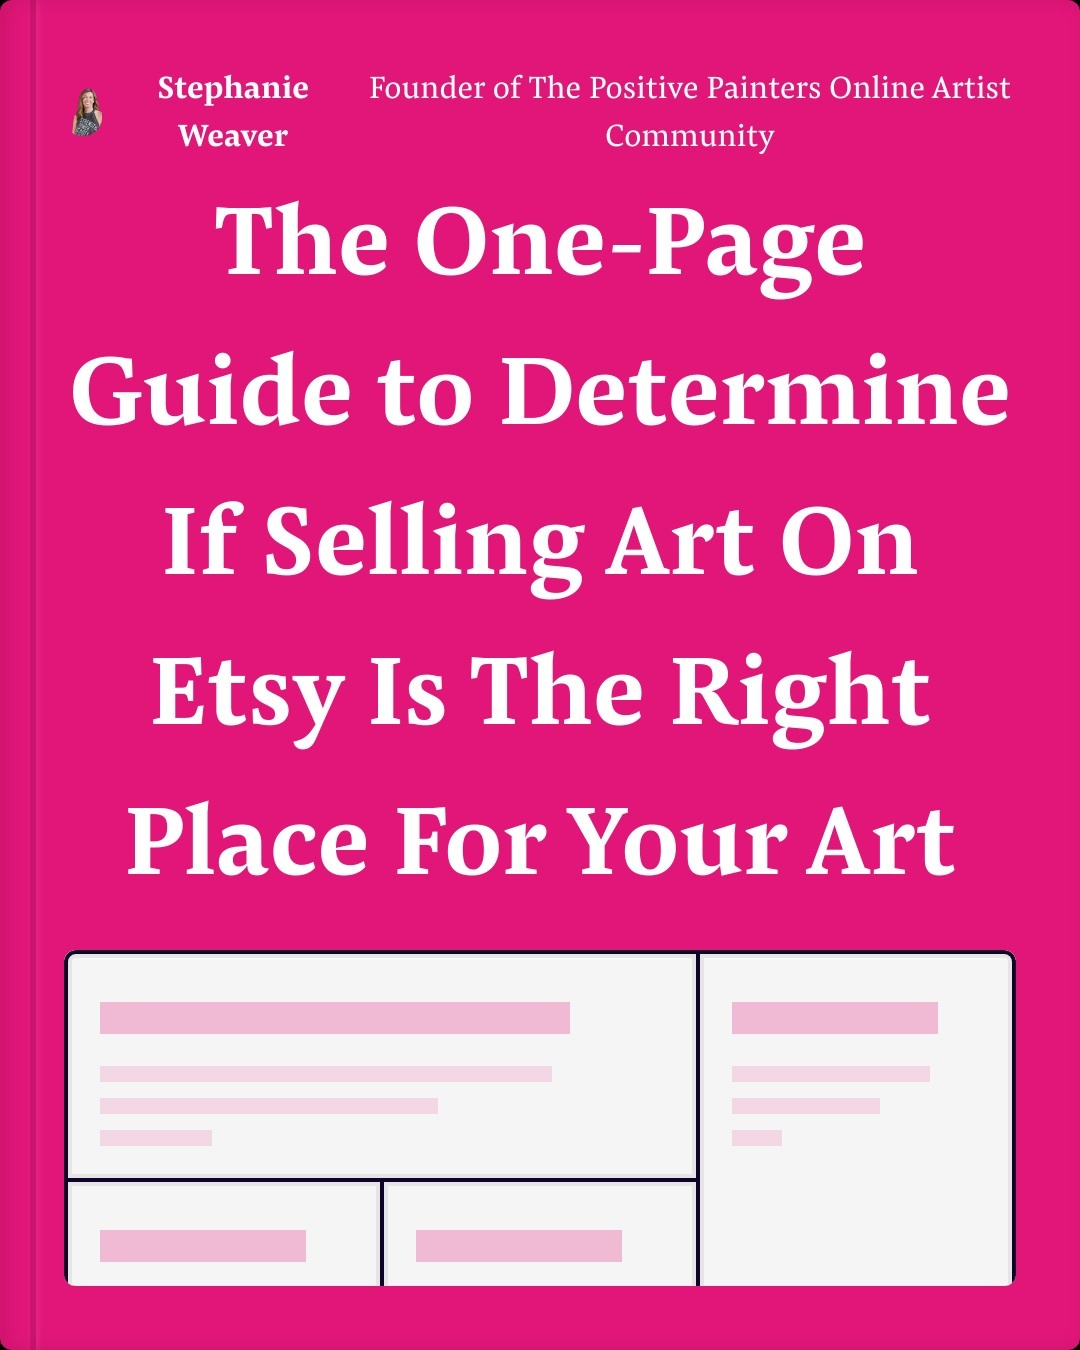 Get the one-page guide to determine if selling art on etsy is the right place for your art.